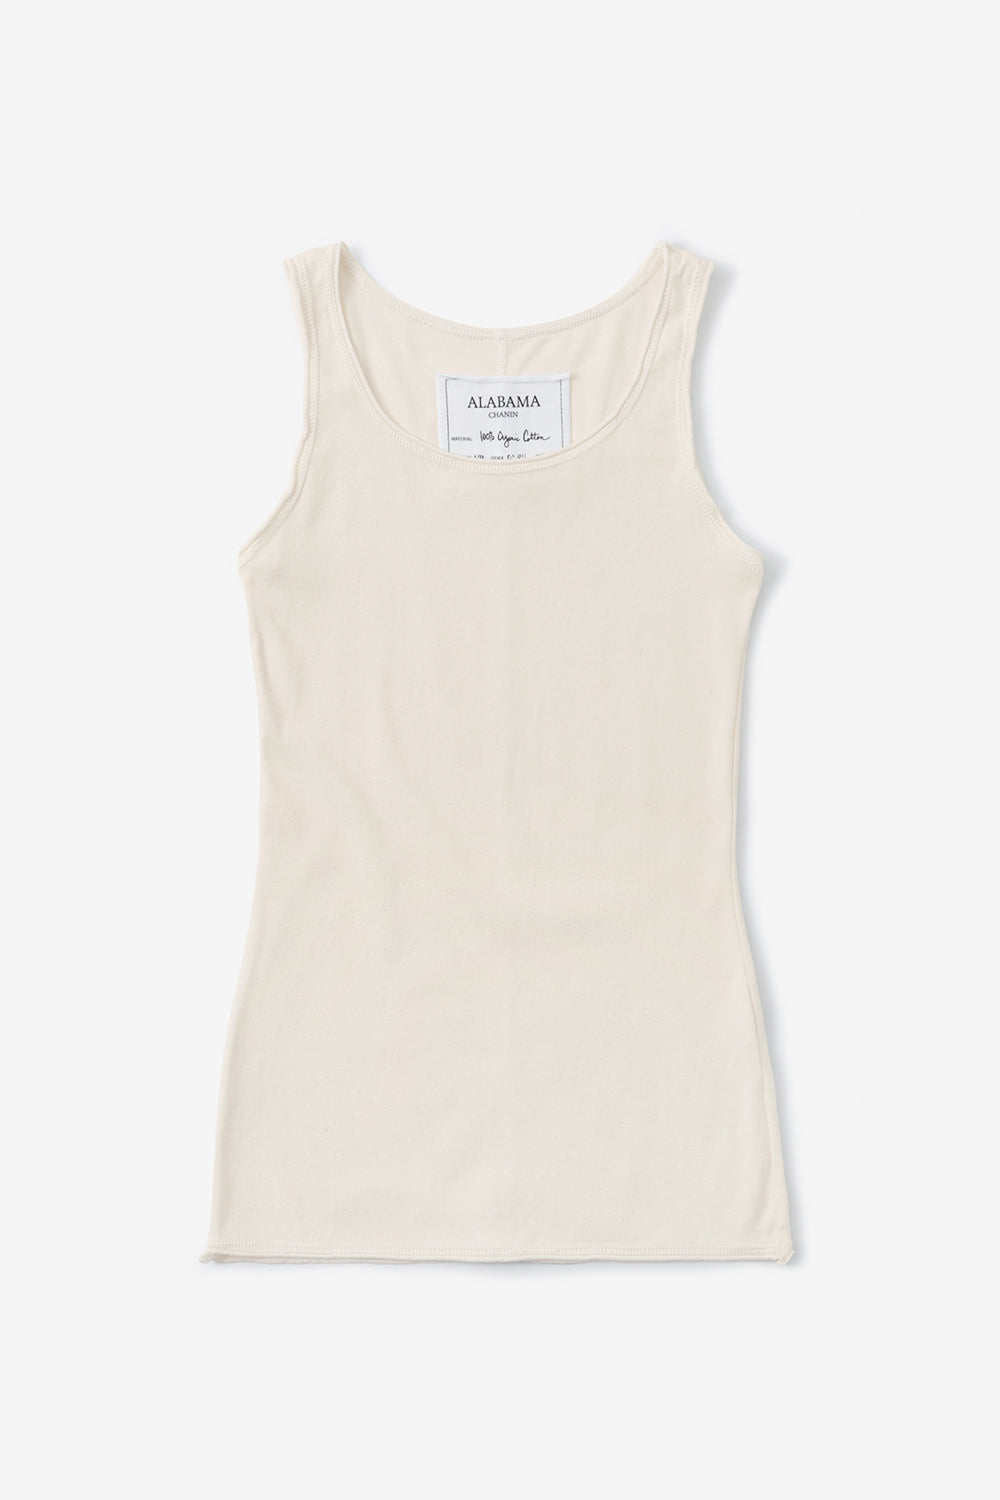 Alabama Chanin The Tank Sleeveless Rib Knit in Natural